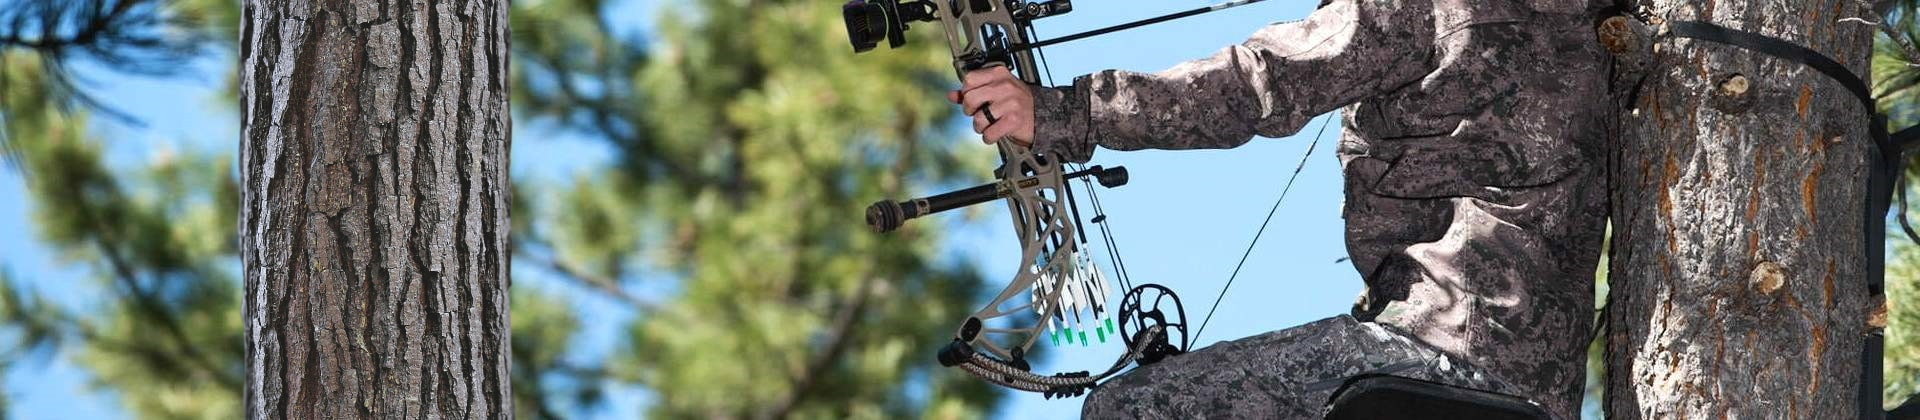 Best Bow Stabilizers - Top Rated and Reviewed